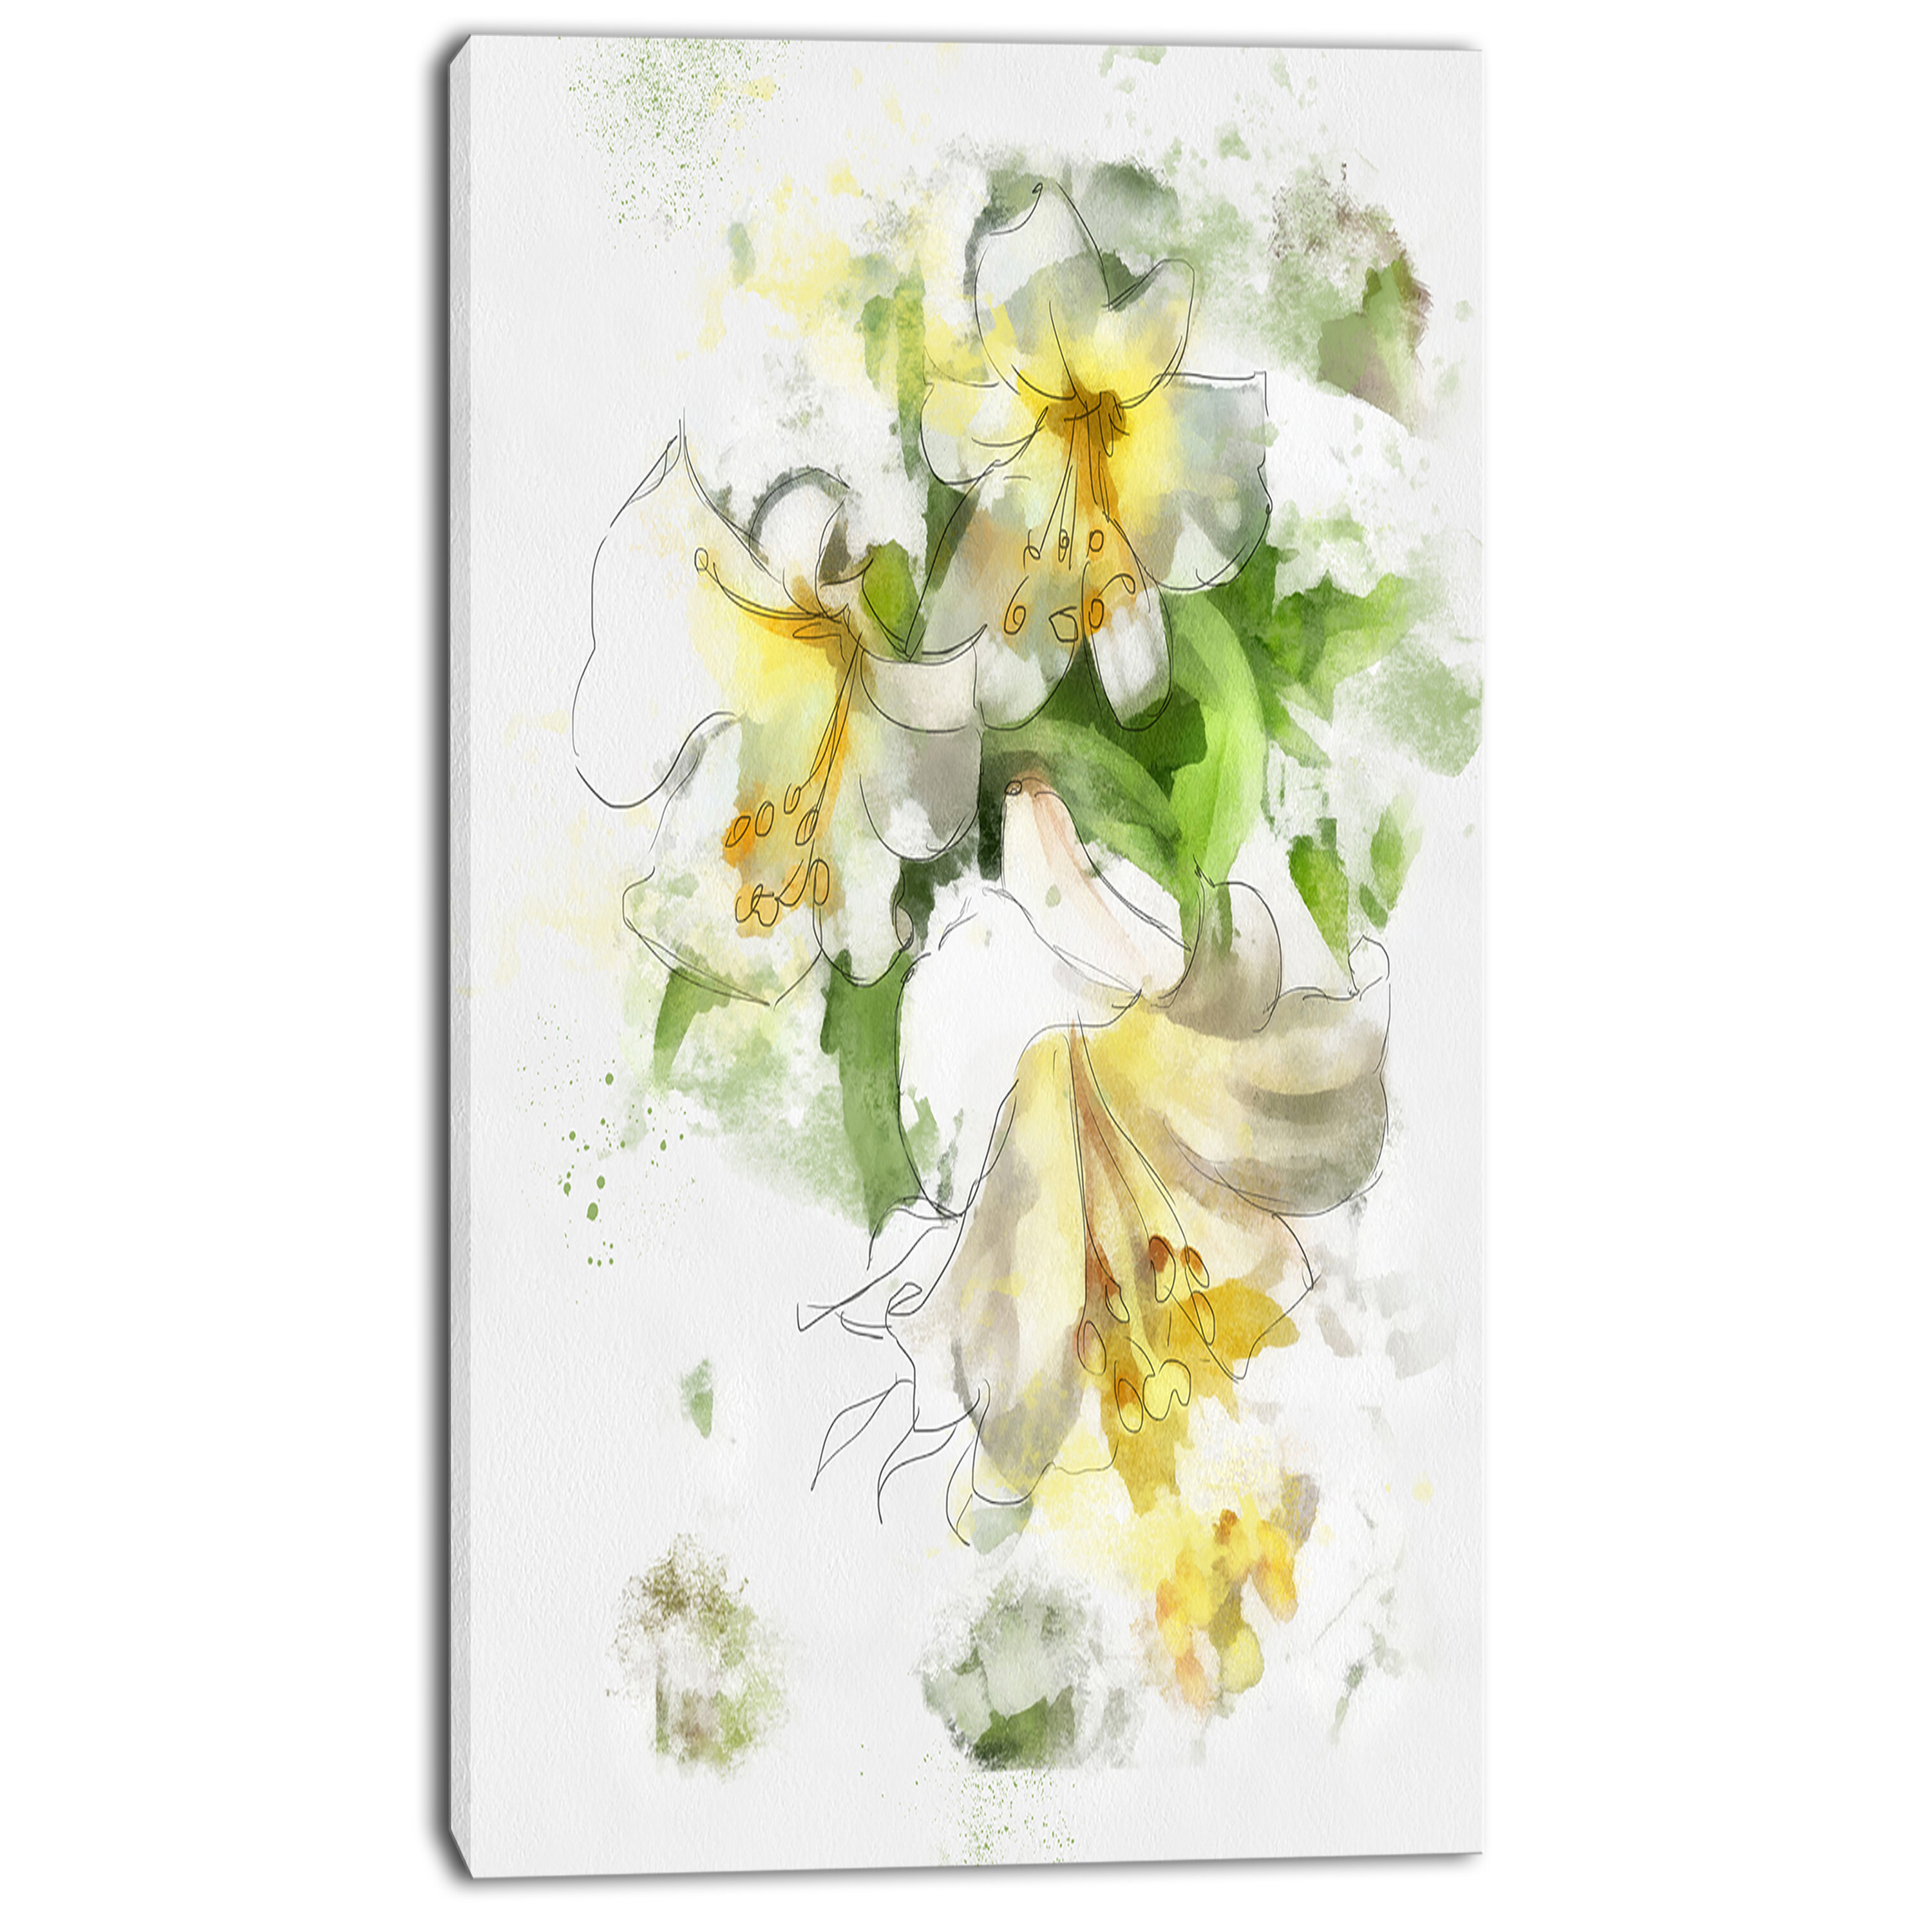 Designart Bunch Of Small Flowers Watercolor Painting Print On